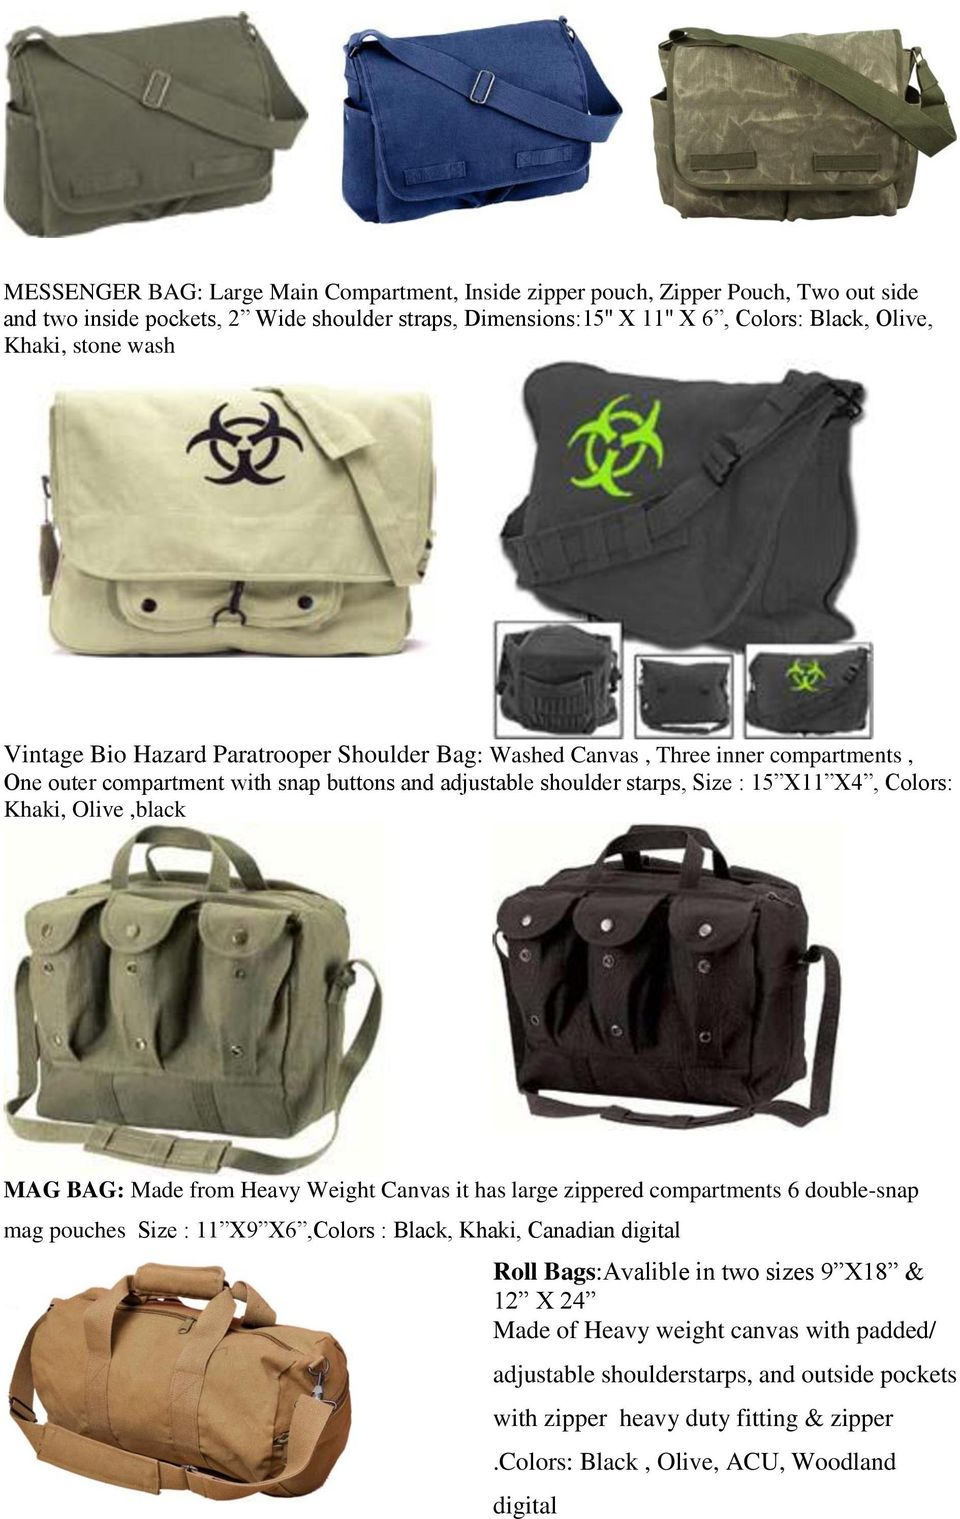 Khaki, Olive,black MAG BAG: Made from Heavy Weight Canvas it has large zippered compartments 6 double-snap mag pouches Size : 11 X9 X6,Colors : Black, Khaki, Canadian digital Roll Bags:Avalible